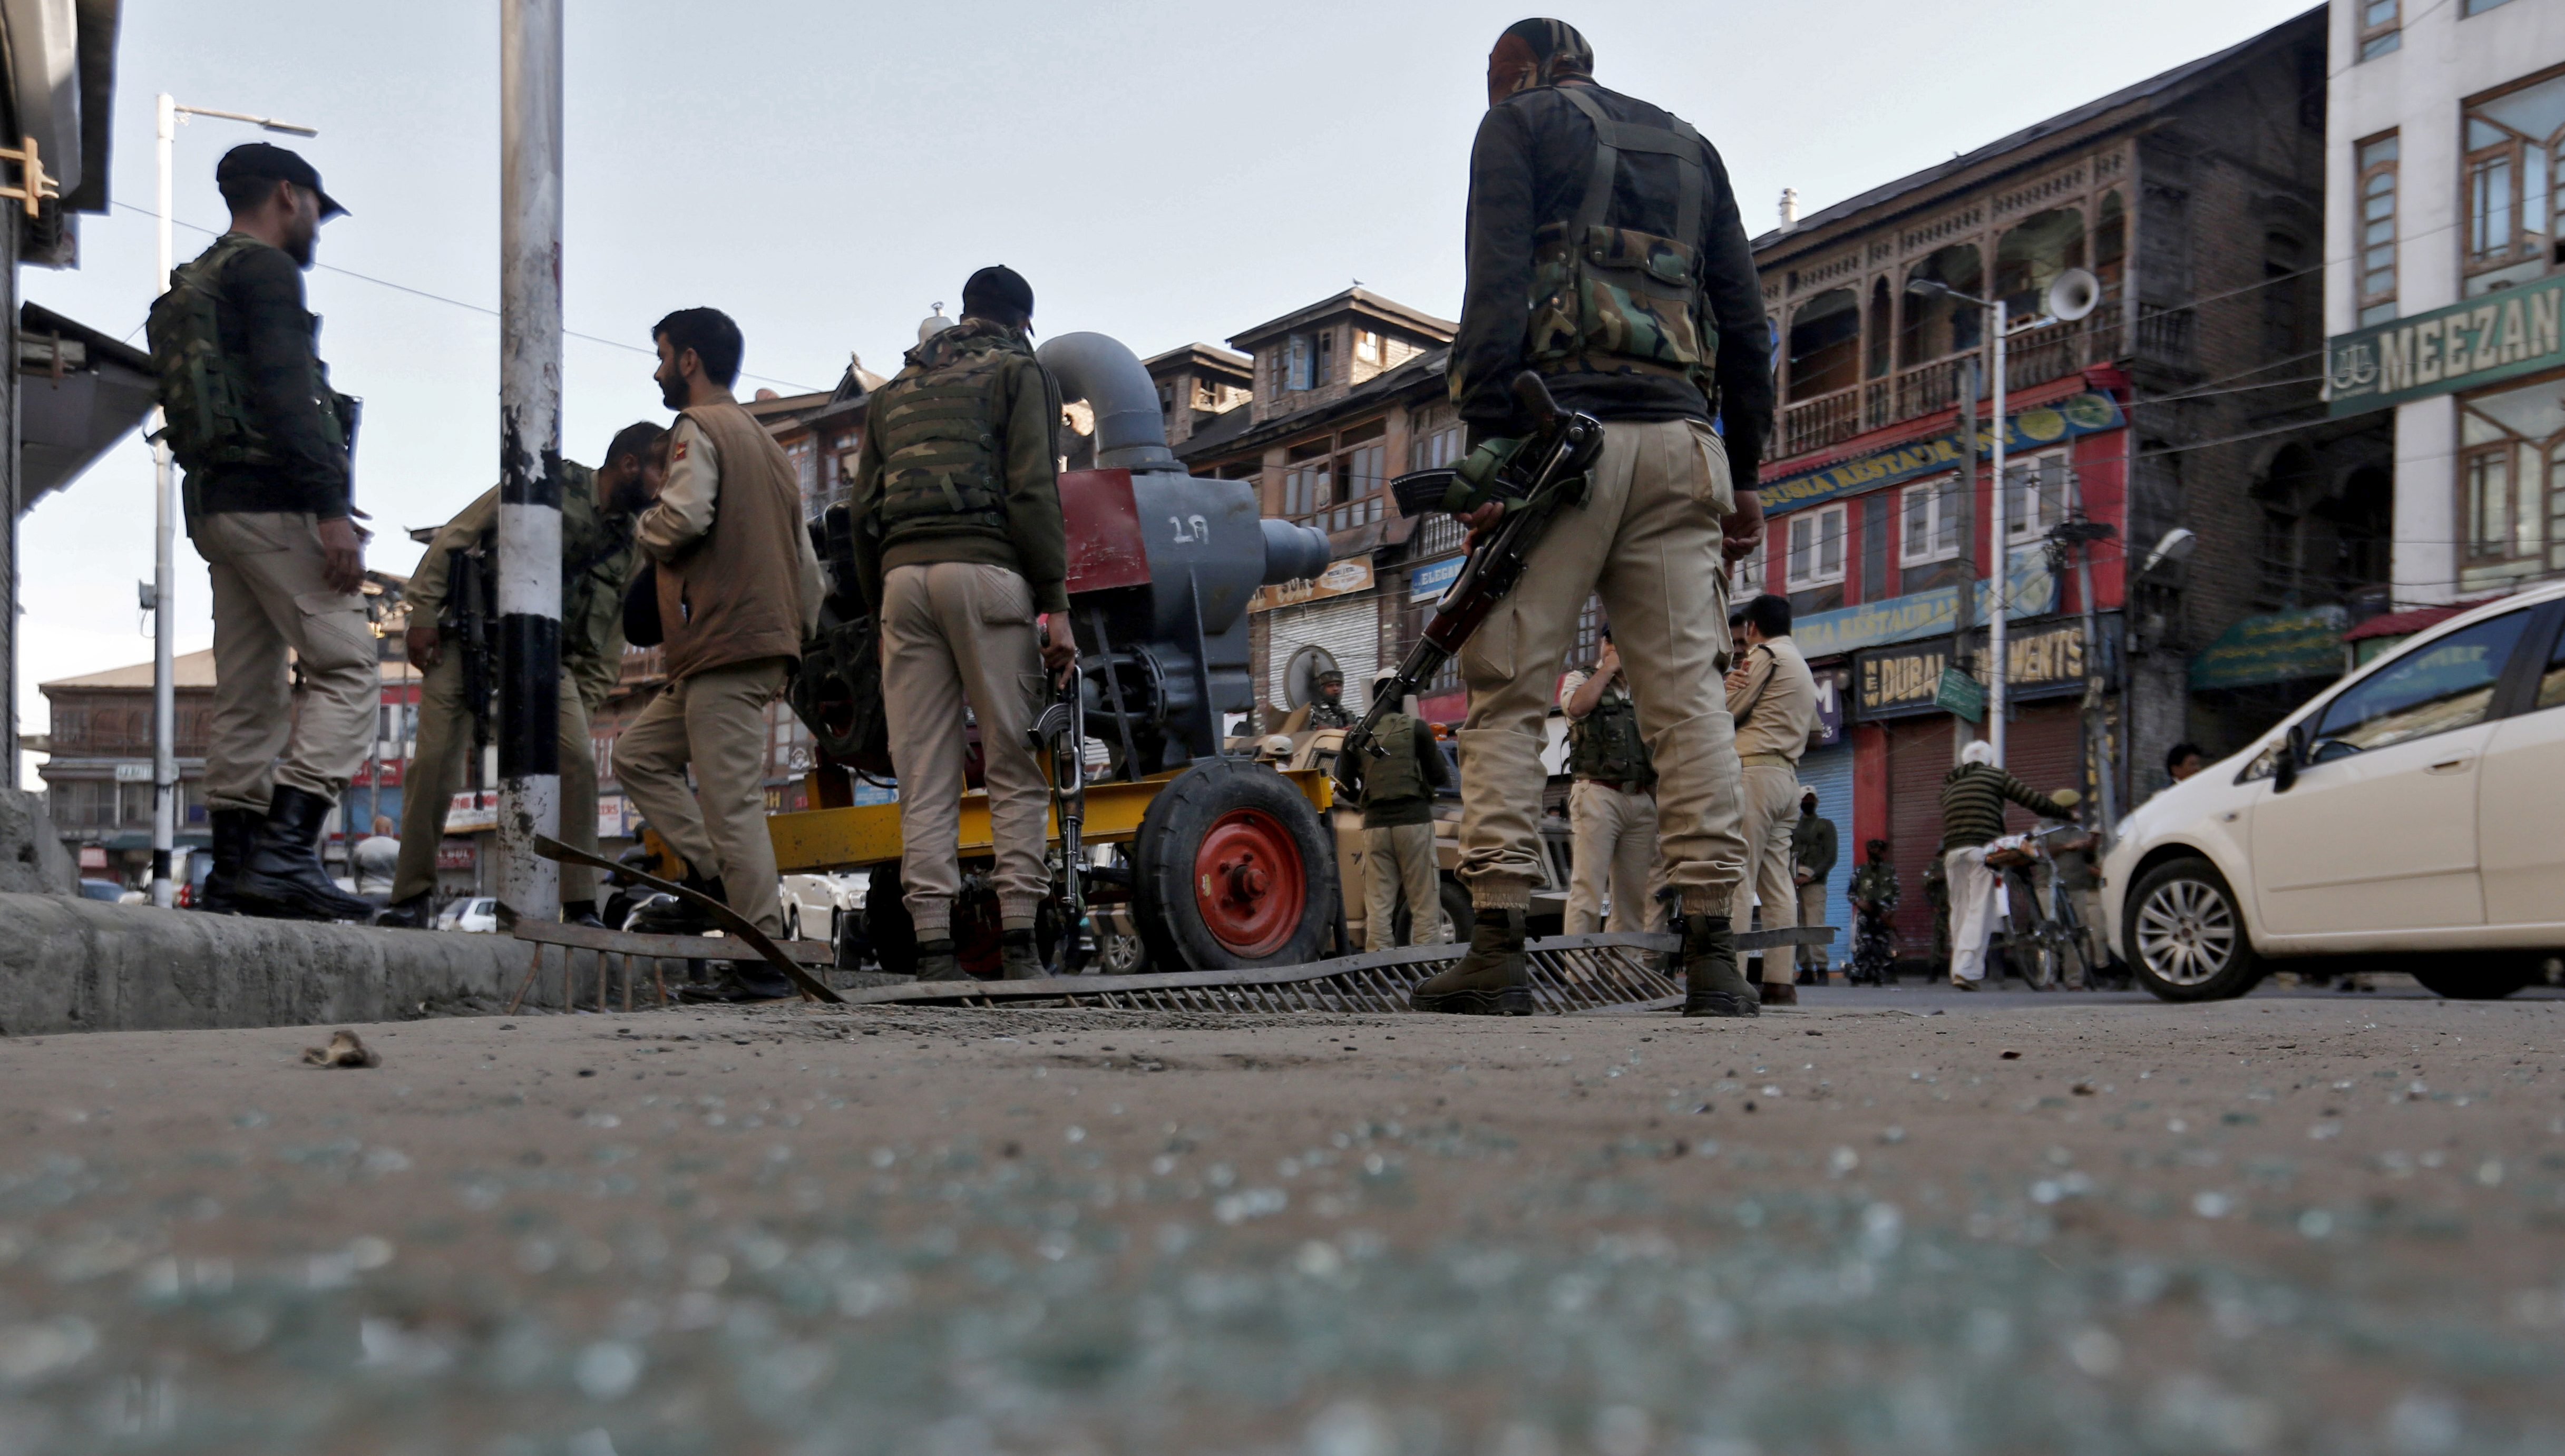 As Jammu & Kashmir loses its political status, here's what the past 80 days have meant for it